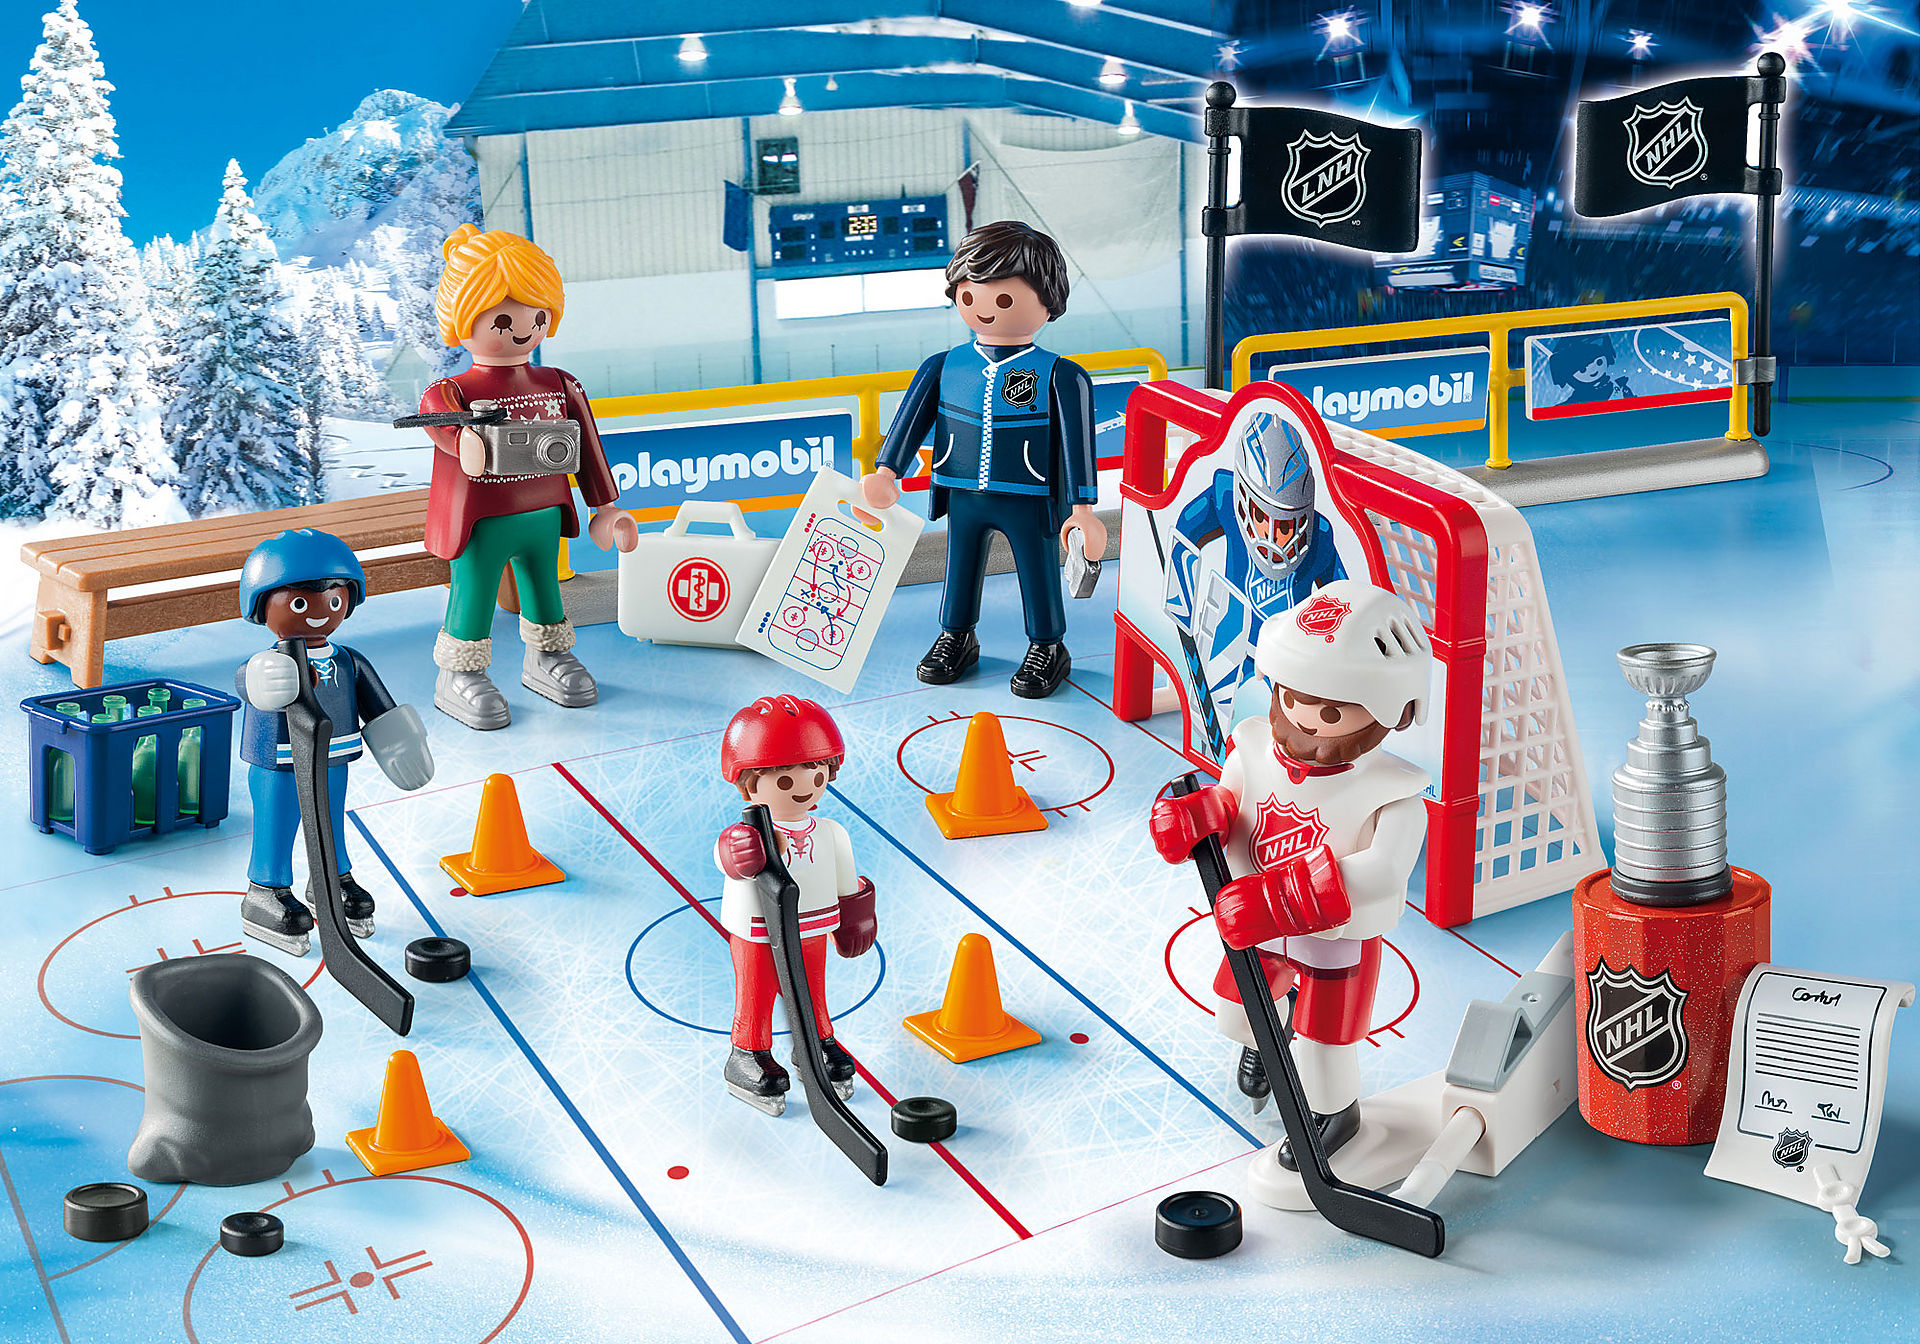 http://media.playmobil.com/i/playmobil/9294_product_extra1/NHL™ Advent Calendar - Road to the Cup